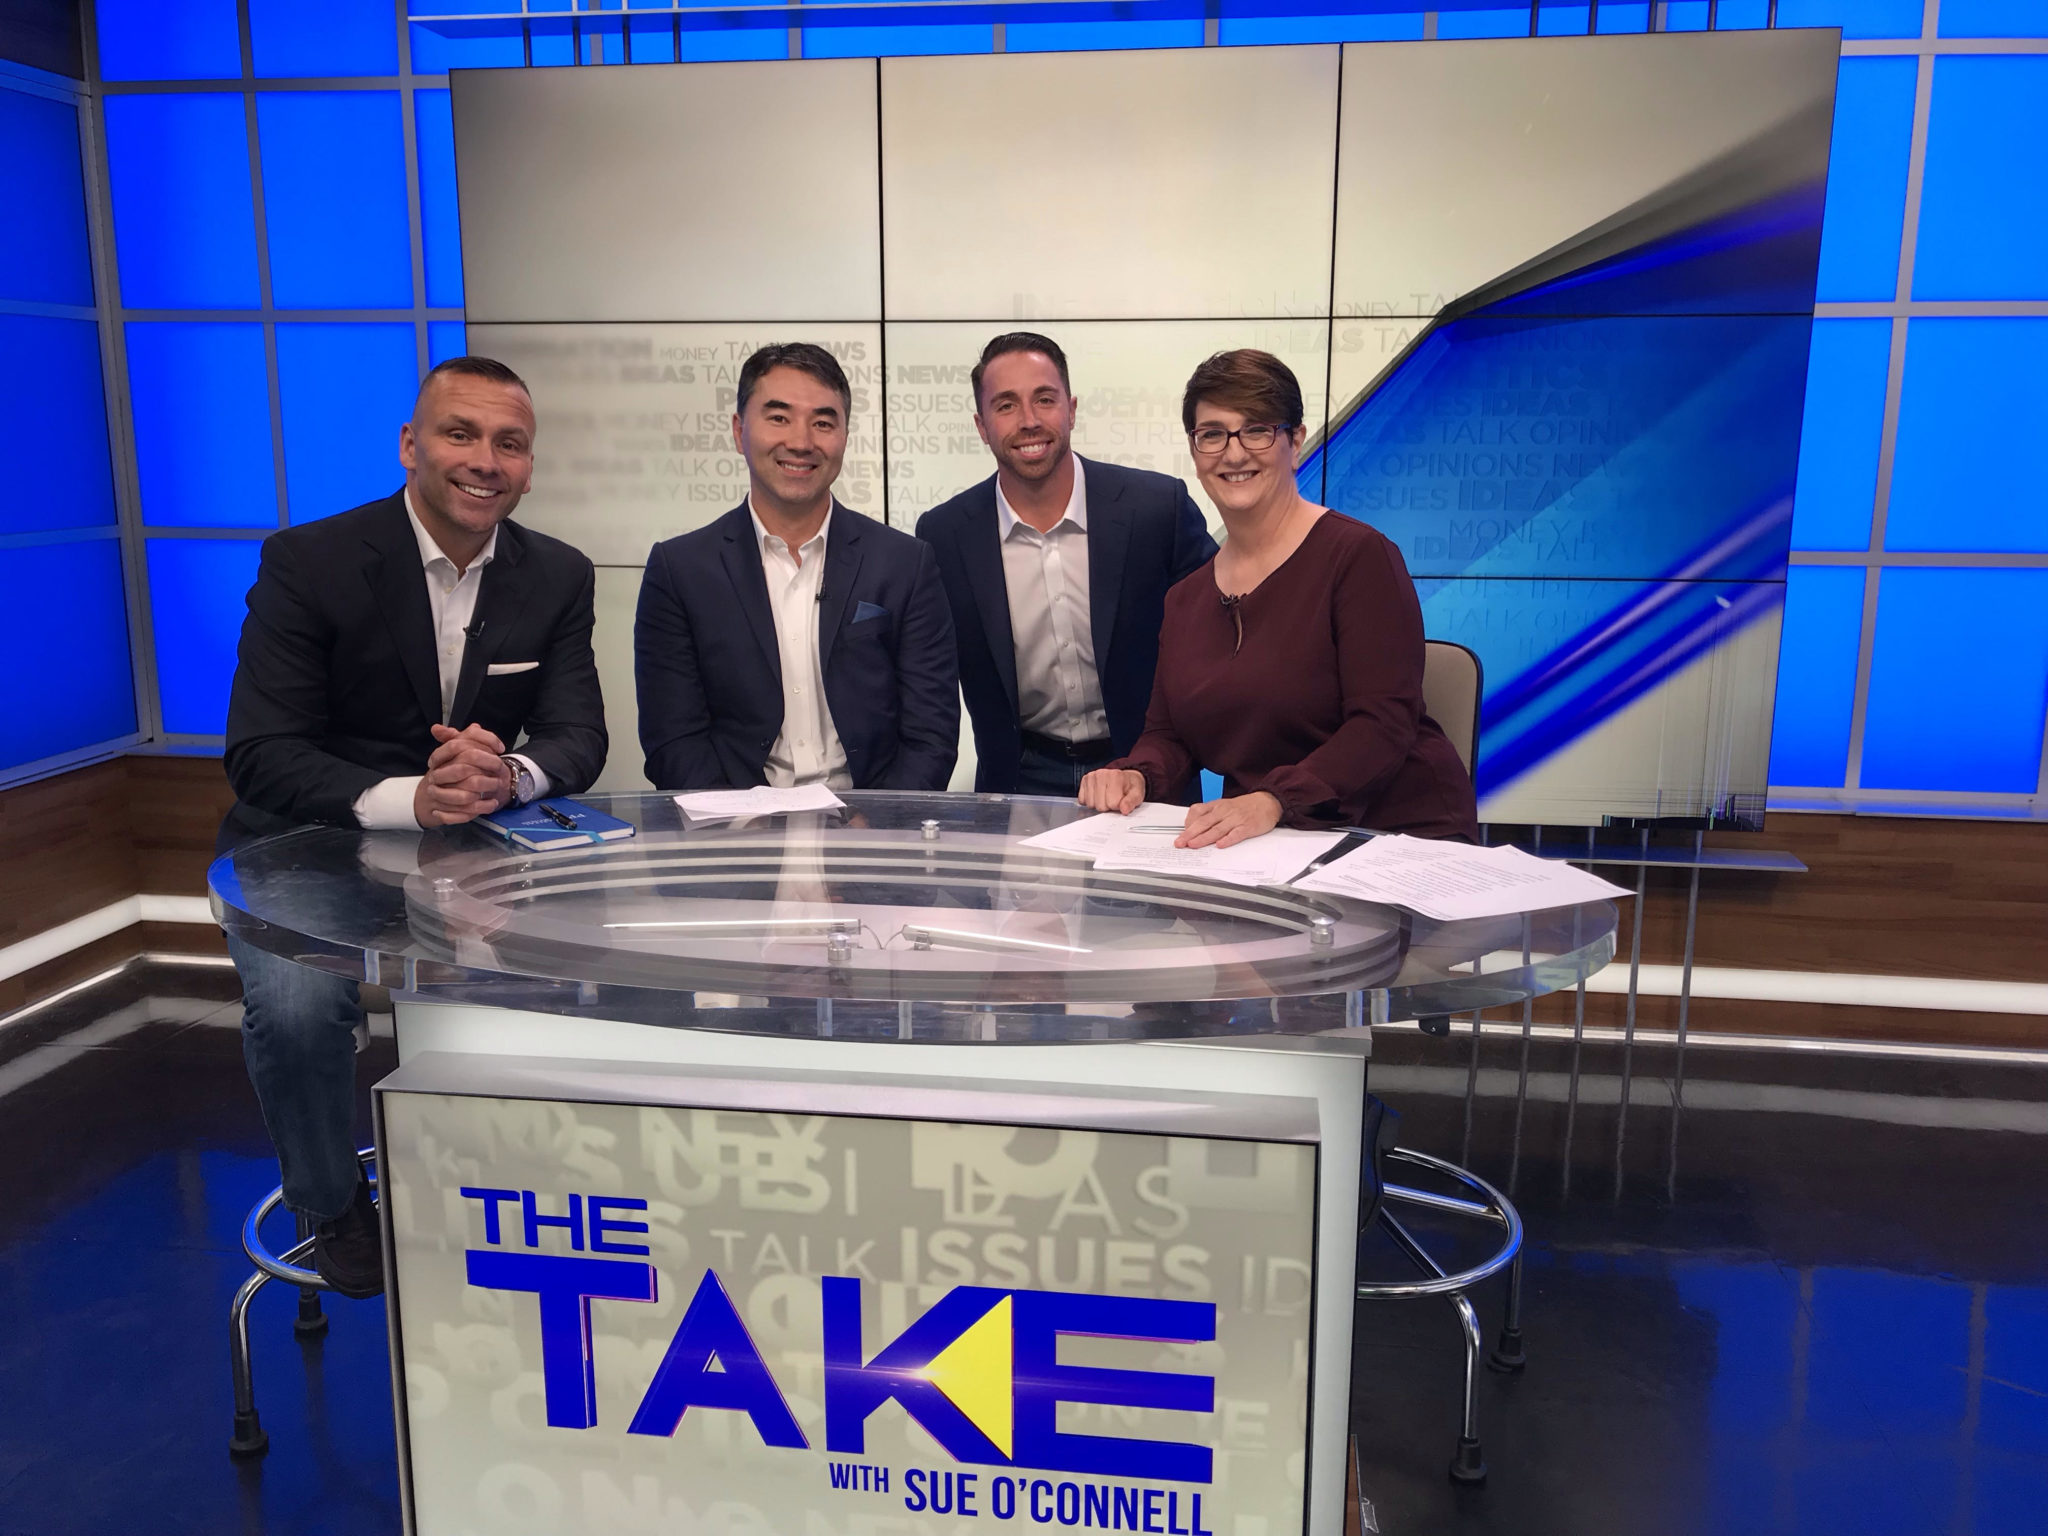 CANNAPRENEUR PARTNERS FEATURED DURING NECN/NBC'S BROADCAST ON CANNABIS INVESTING SEGMENT